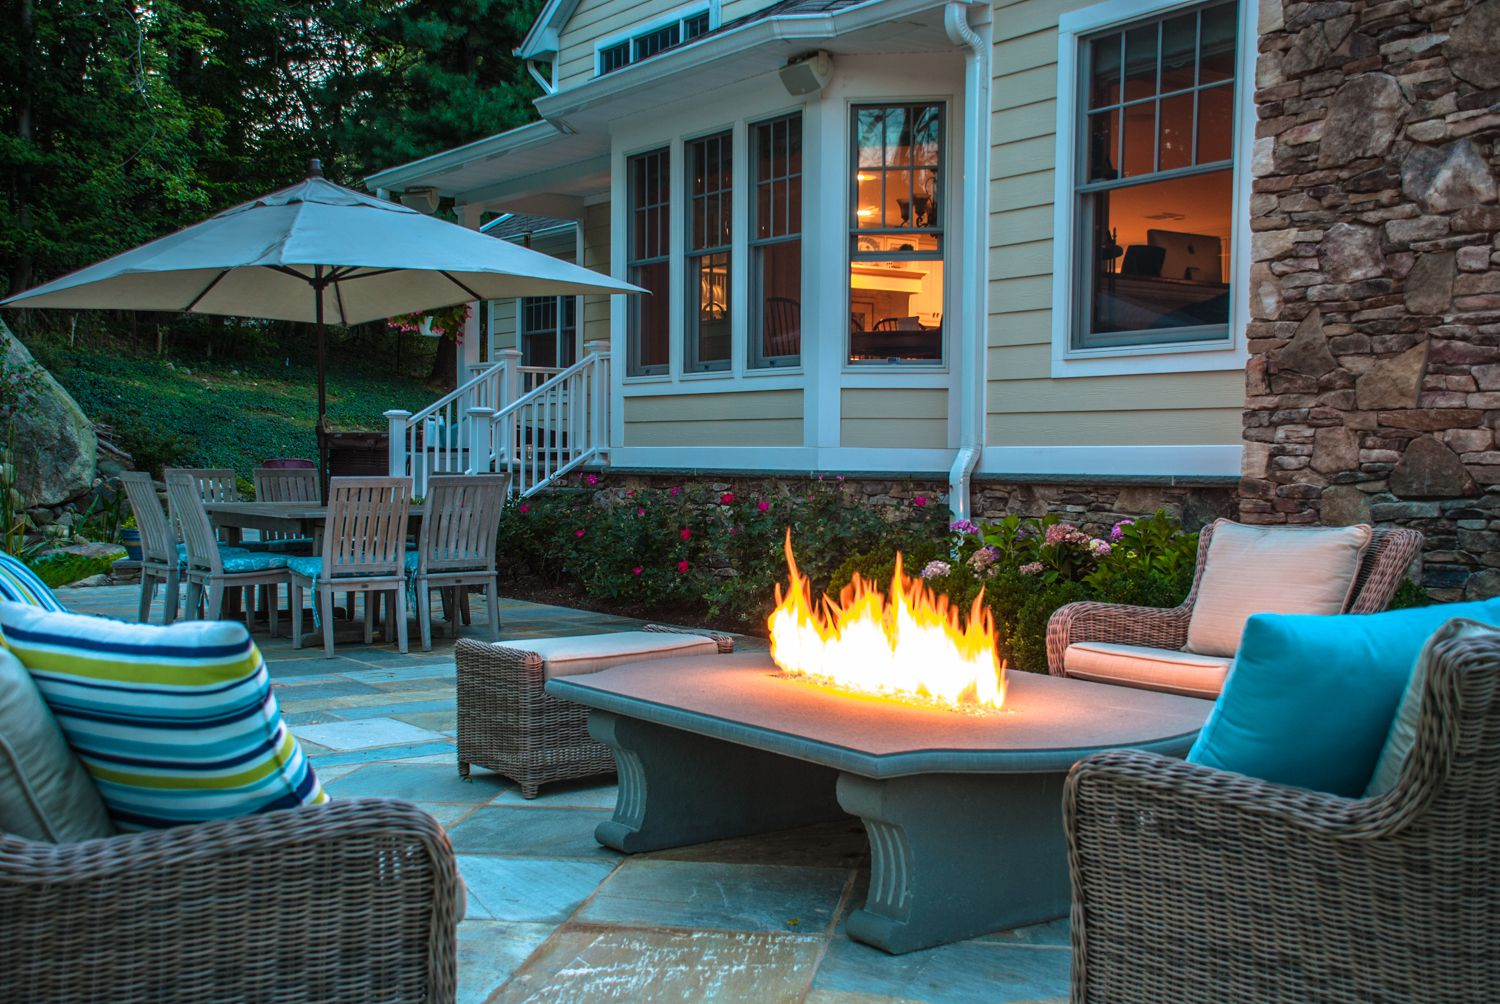 Choose Fabulous Outdoor Fire Pit Ideas For Comfy Patio With Wicker Sofas  And Ottoman Near Wide